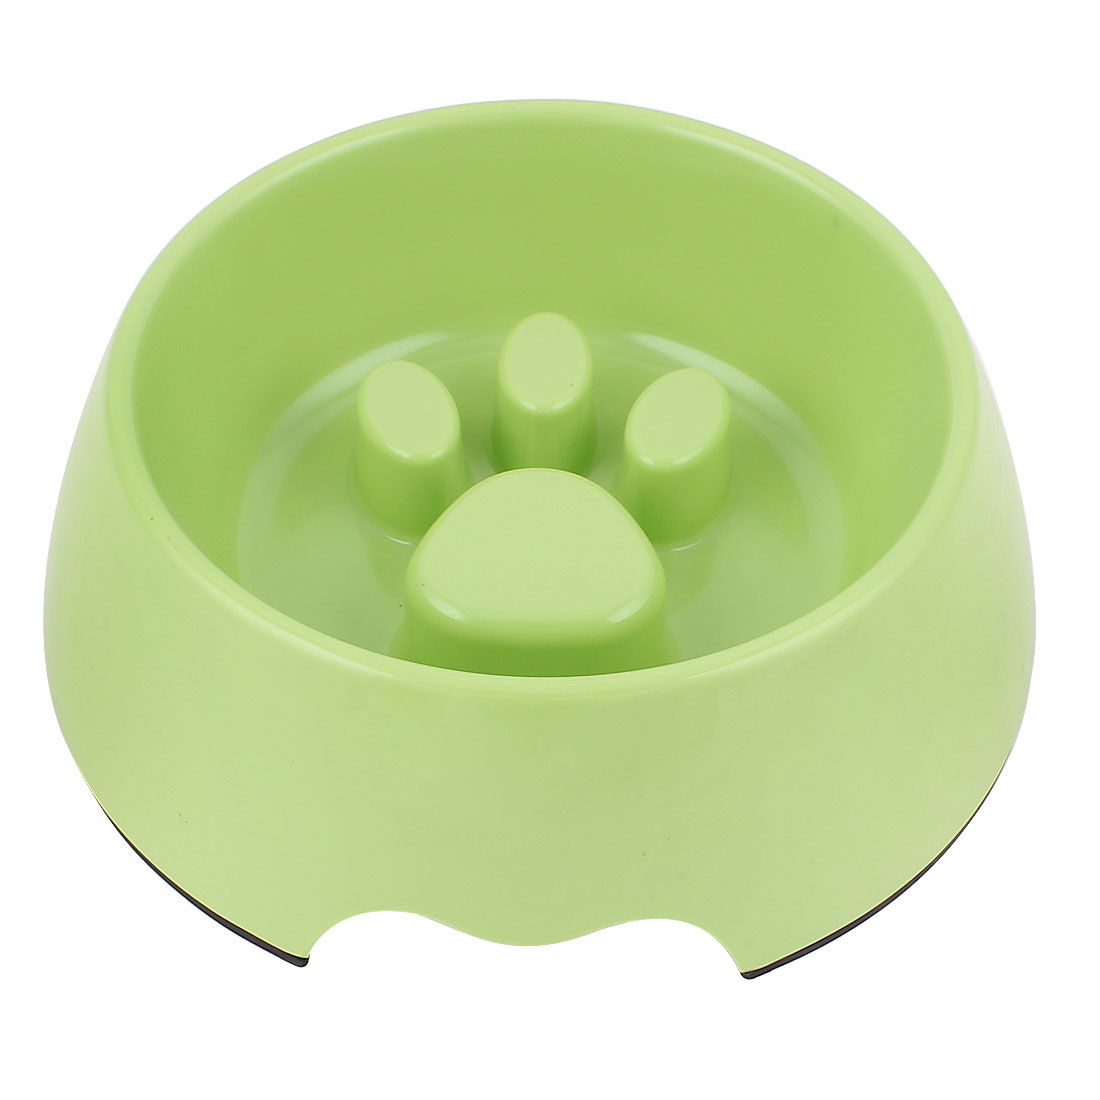 Plastic Pet Dog Puppy Stop Fast Slow Eating Bloat Dish Feeder Bowl Green